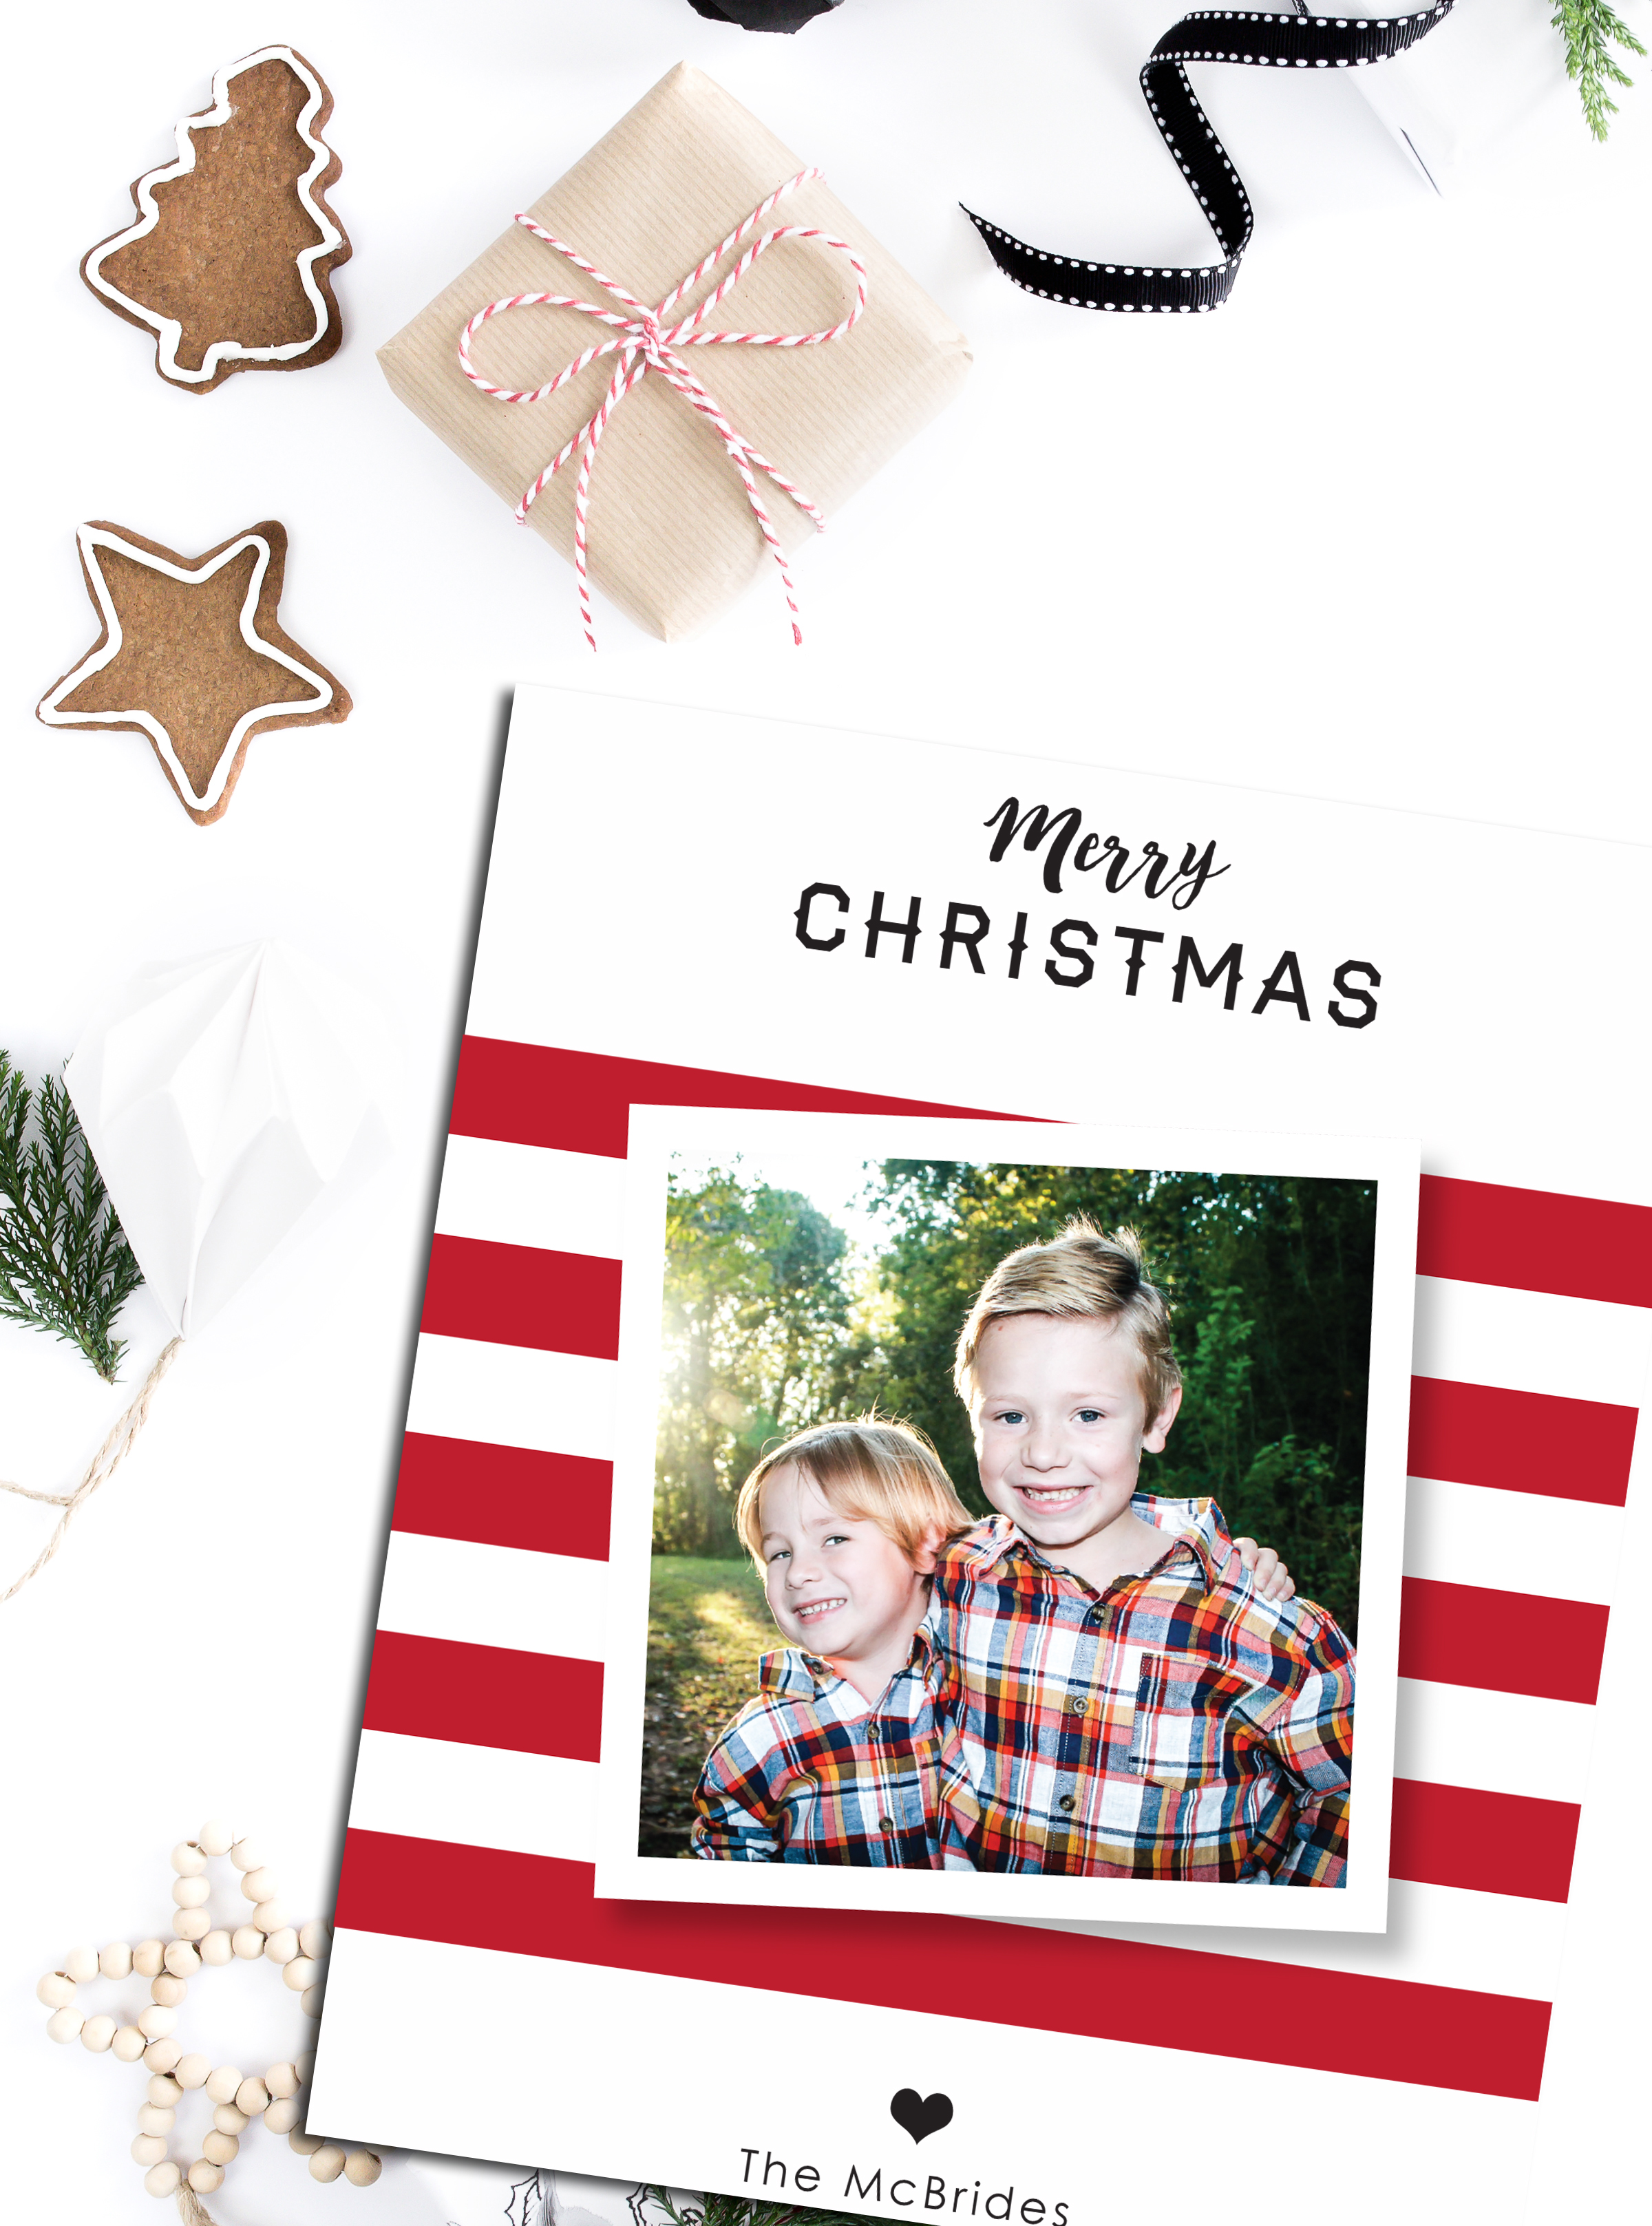 Jen, the momma of those adorable boys, knew exactly what she wanted the design of her holiday card to look like - clean and festive. We were both so pleased with the final result!